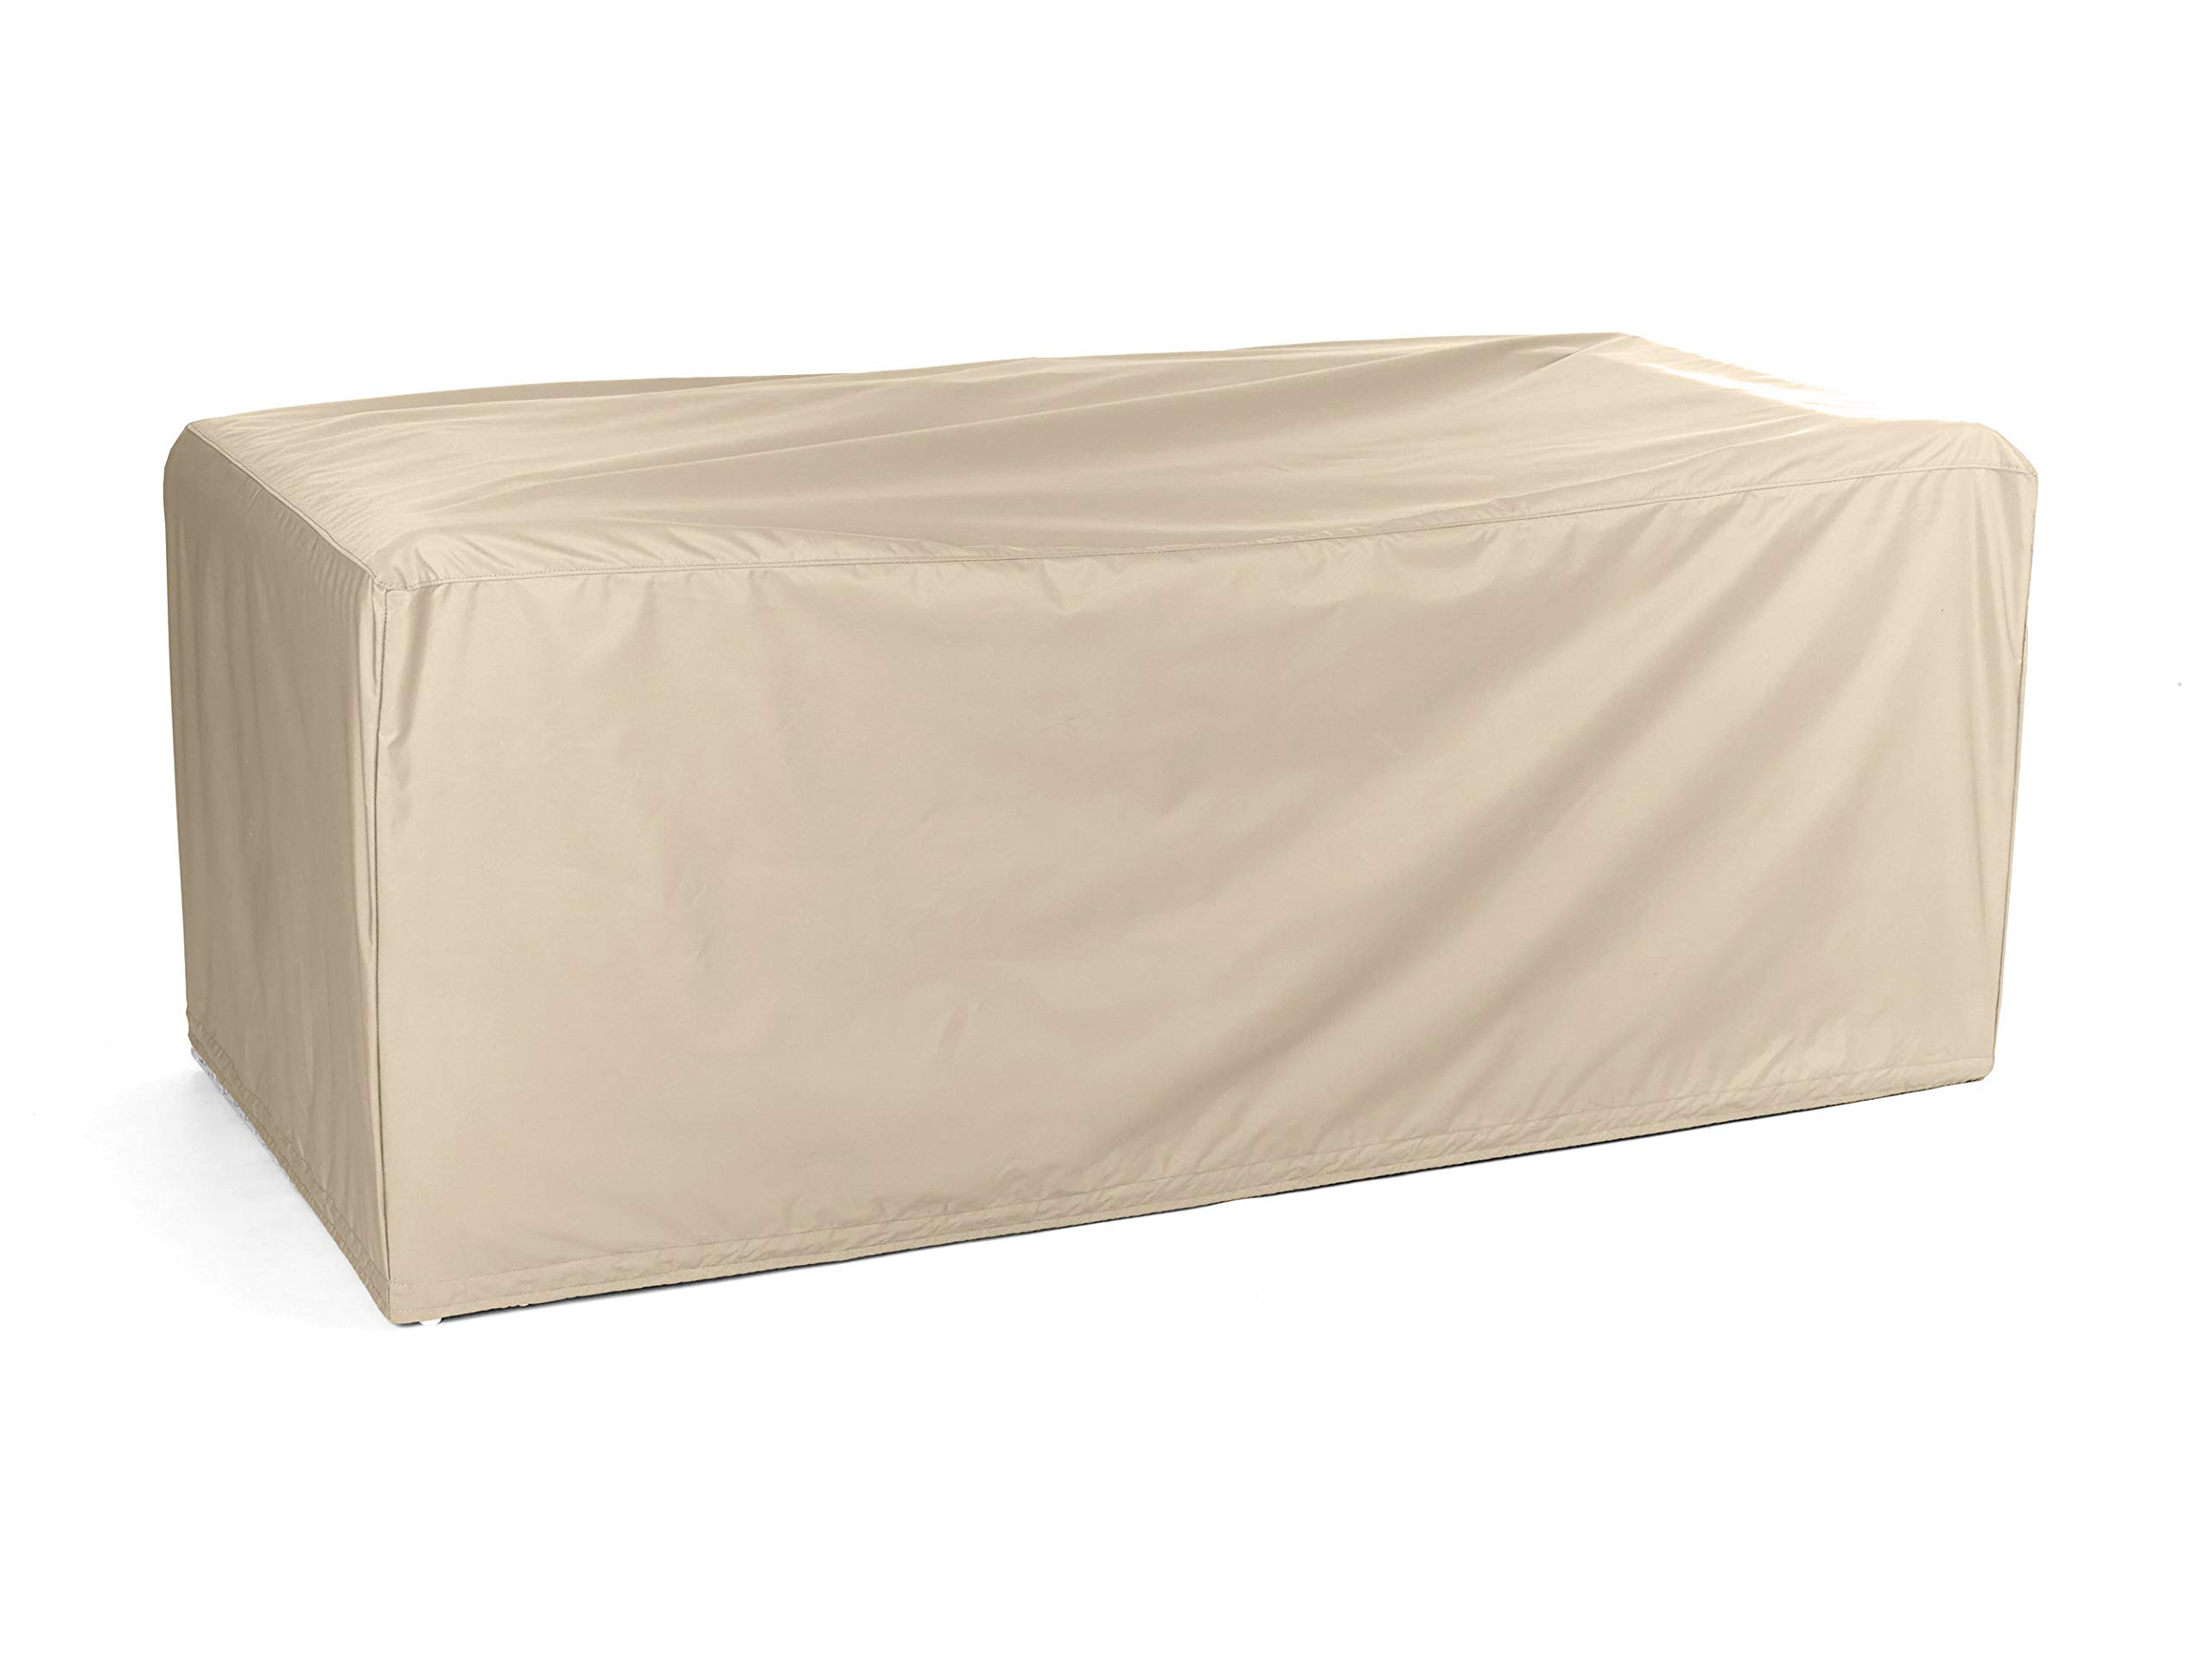 Covermates – Modular Sectional Sofa Cover – Heavy Duty Material - Water and Weather Resistant - Patio Furniture Covers - Khaki